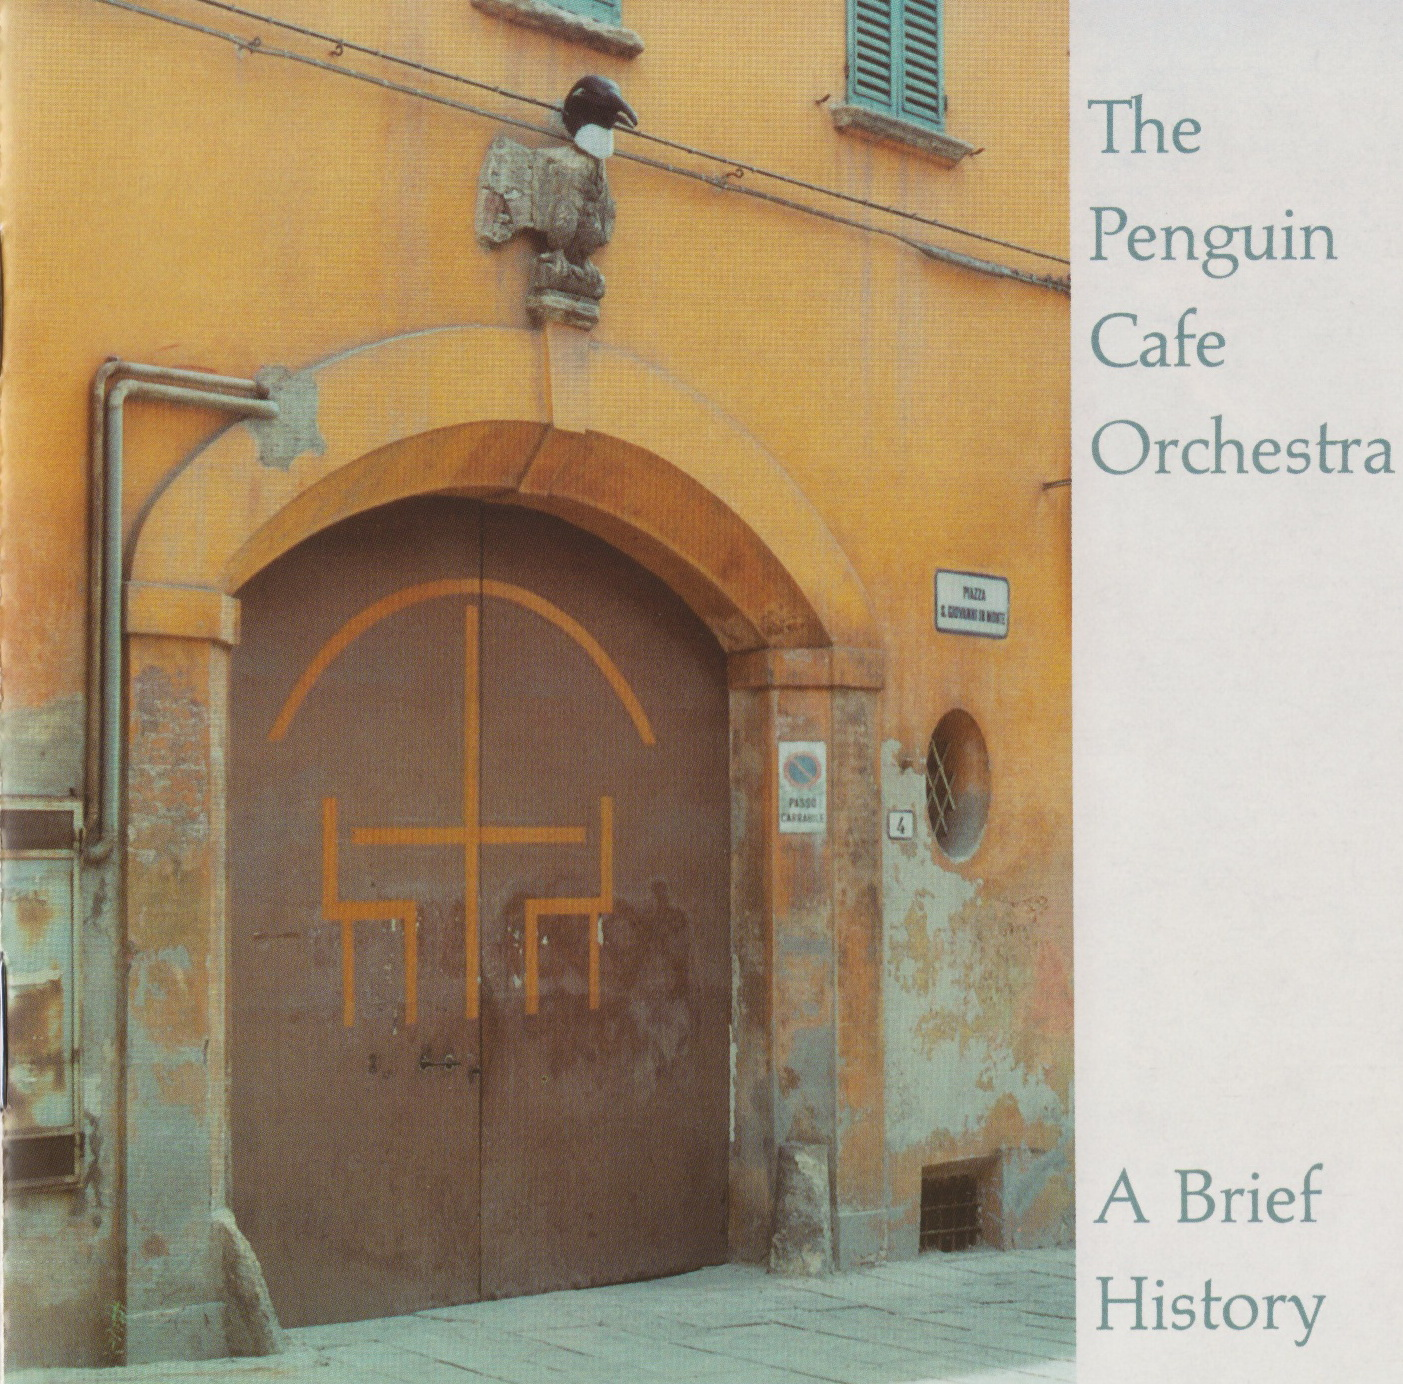 Home of Jazz: The Penguin Cafe Orchestra - A Brief History